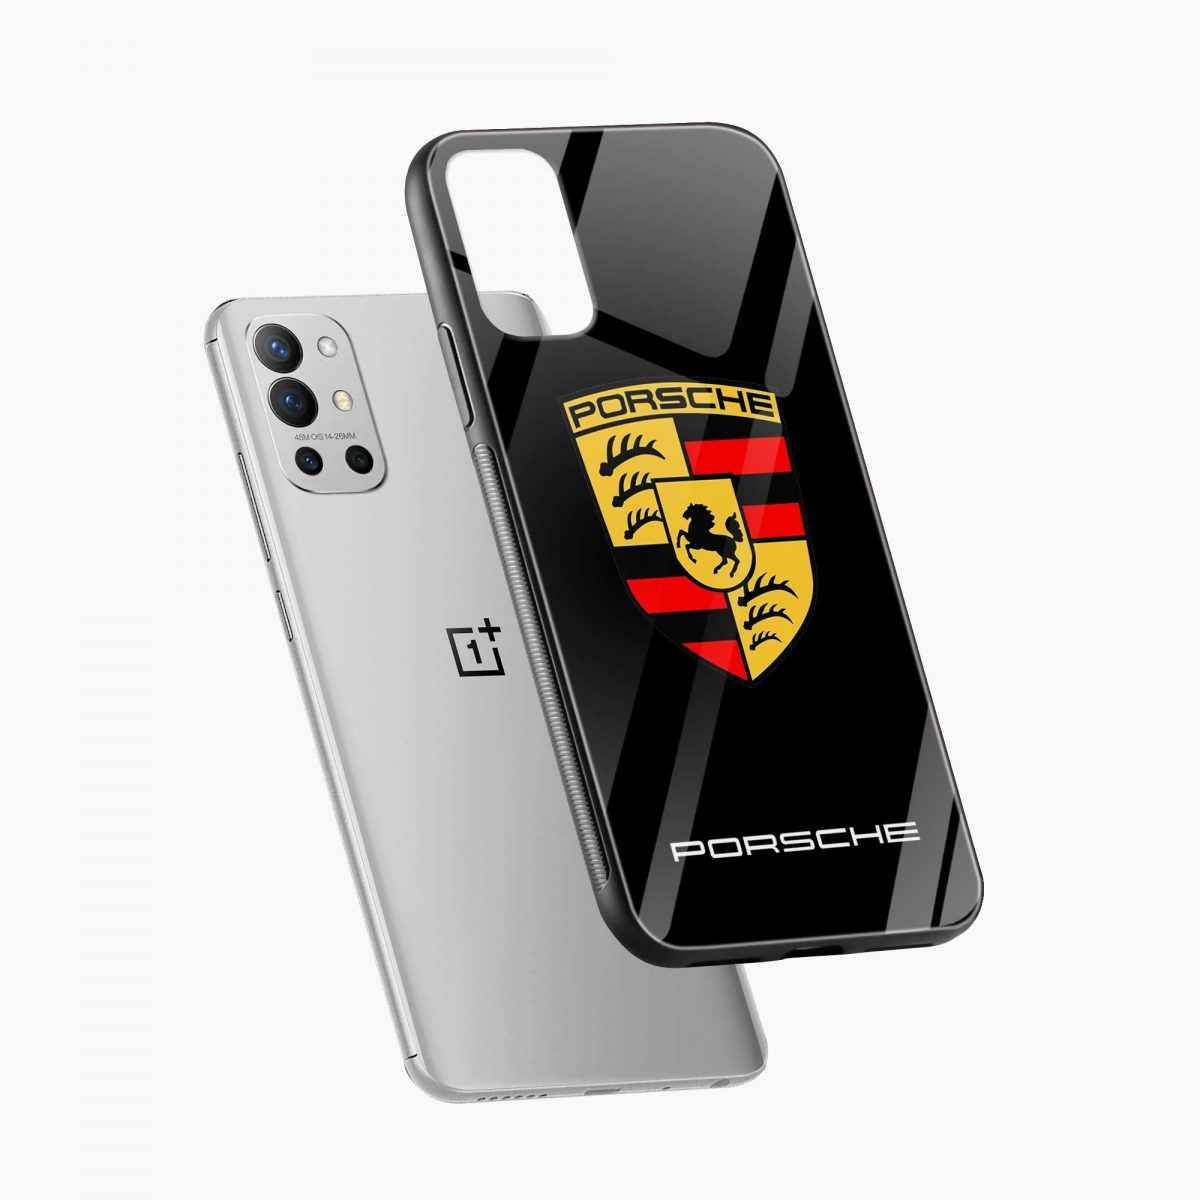 prosche diagonal view oneplus 9r back cover